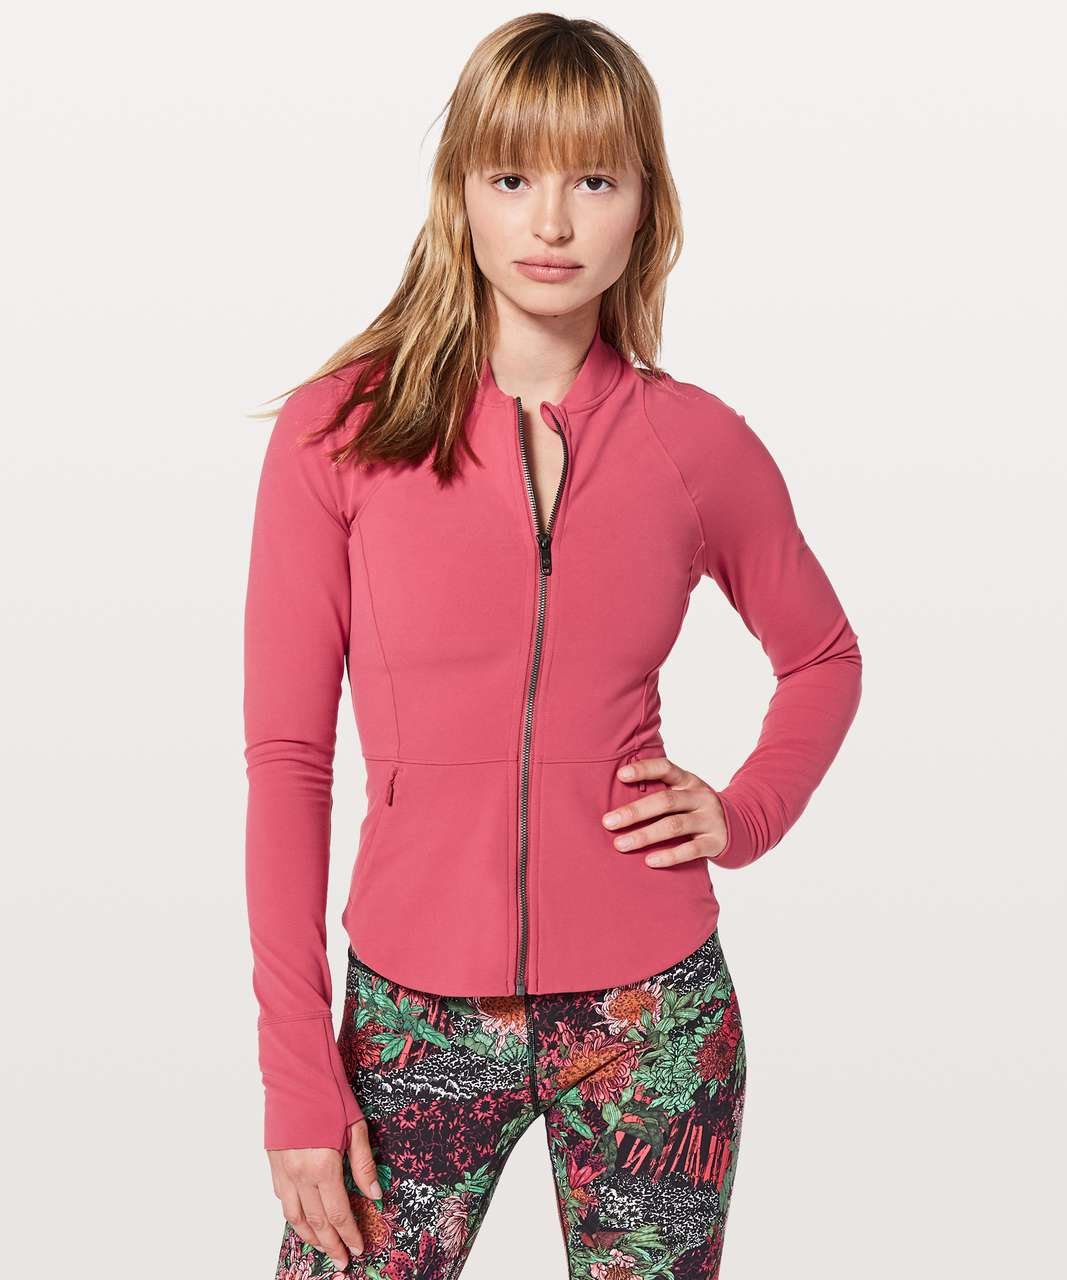 Lululemon The Ease Jacket - Vintage Rose